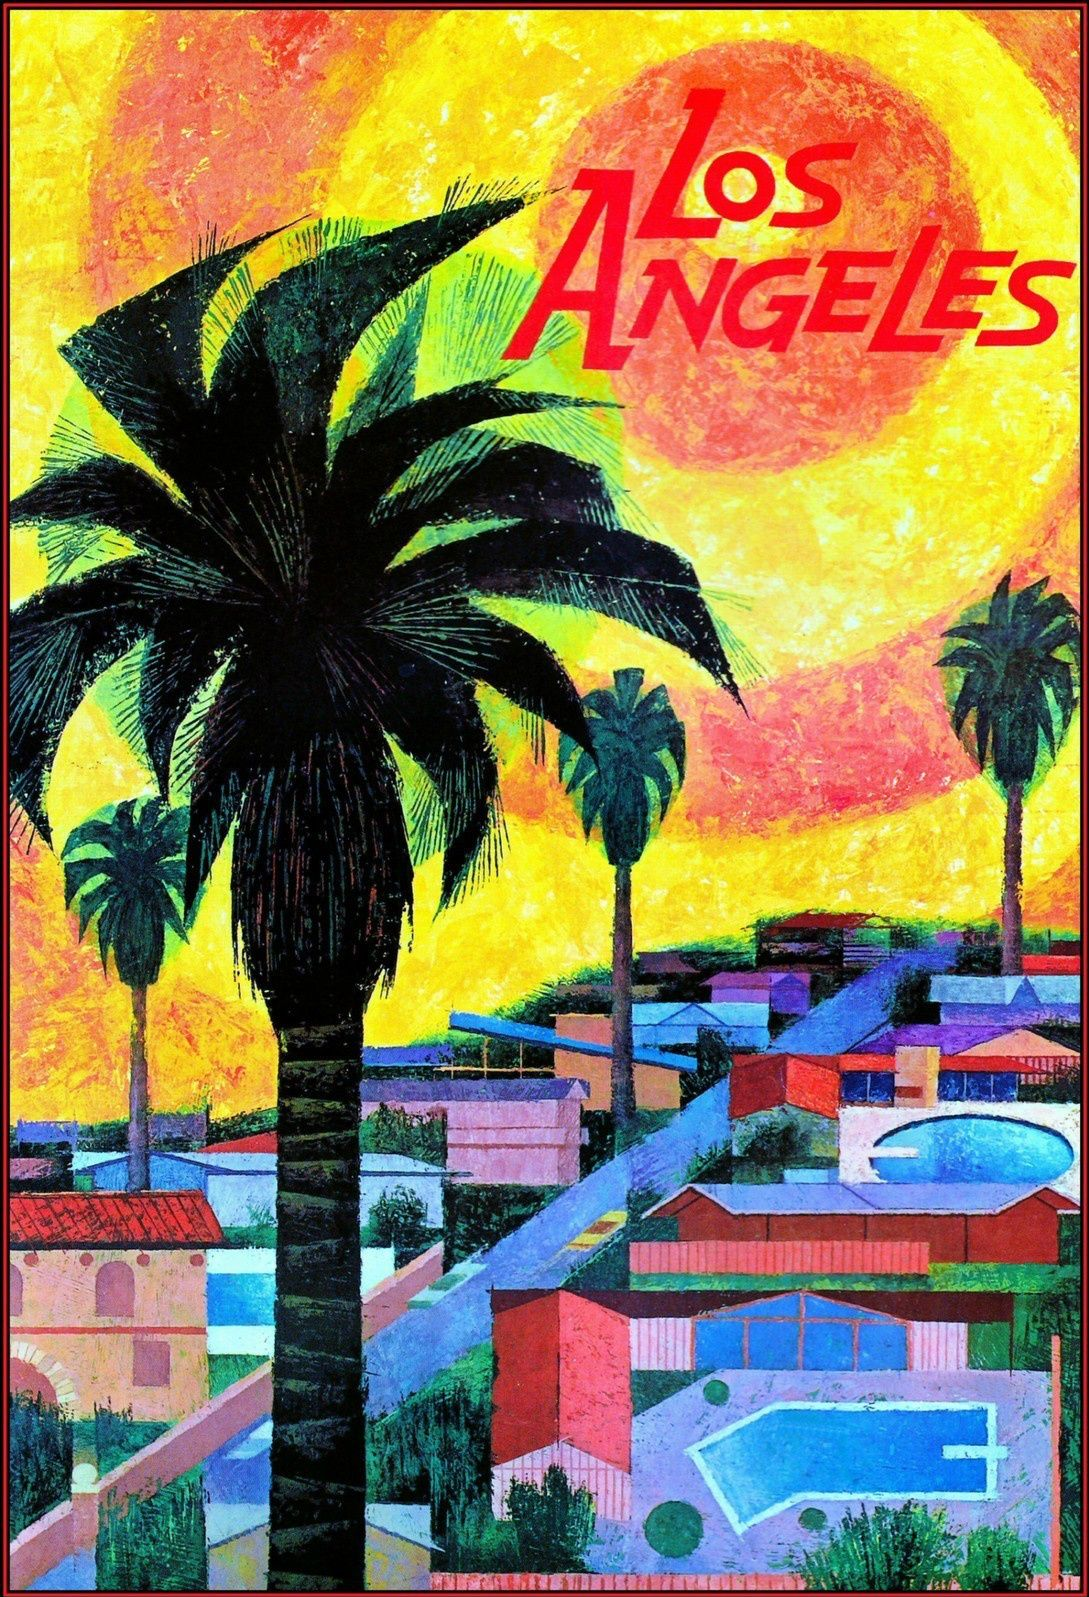 Vintage Los Angeles Travel Poster Living In Los Angeles - Los angeles posters vintage